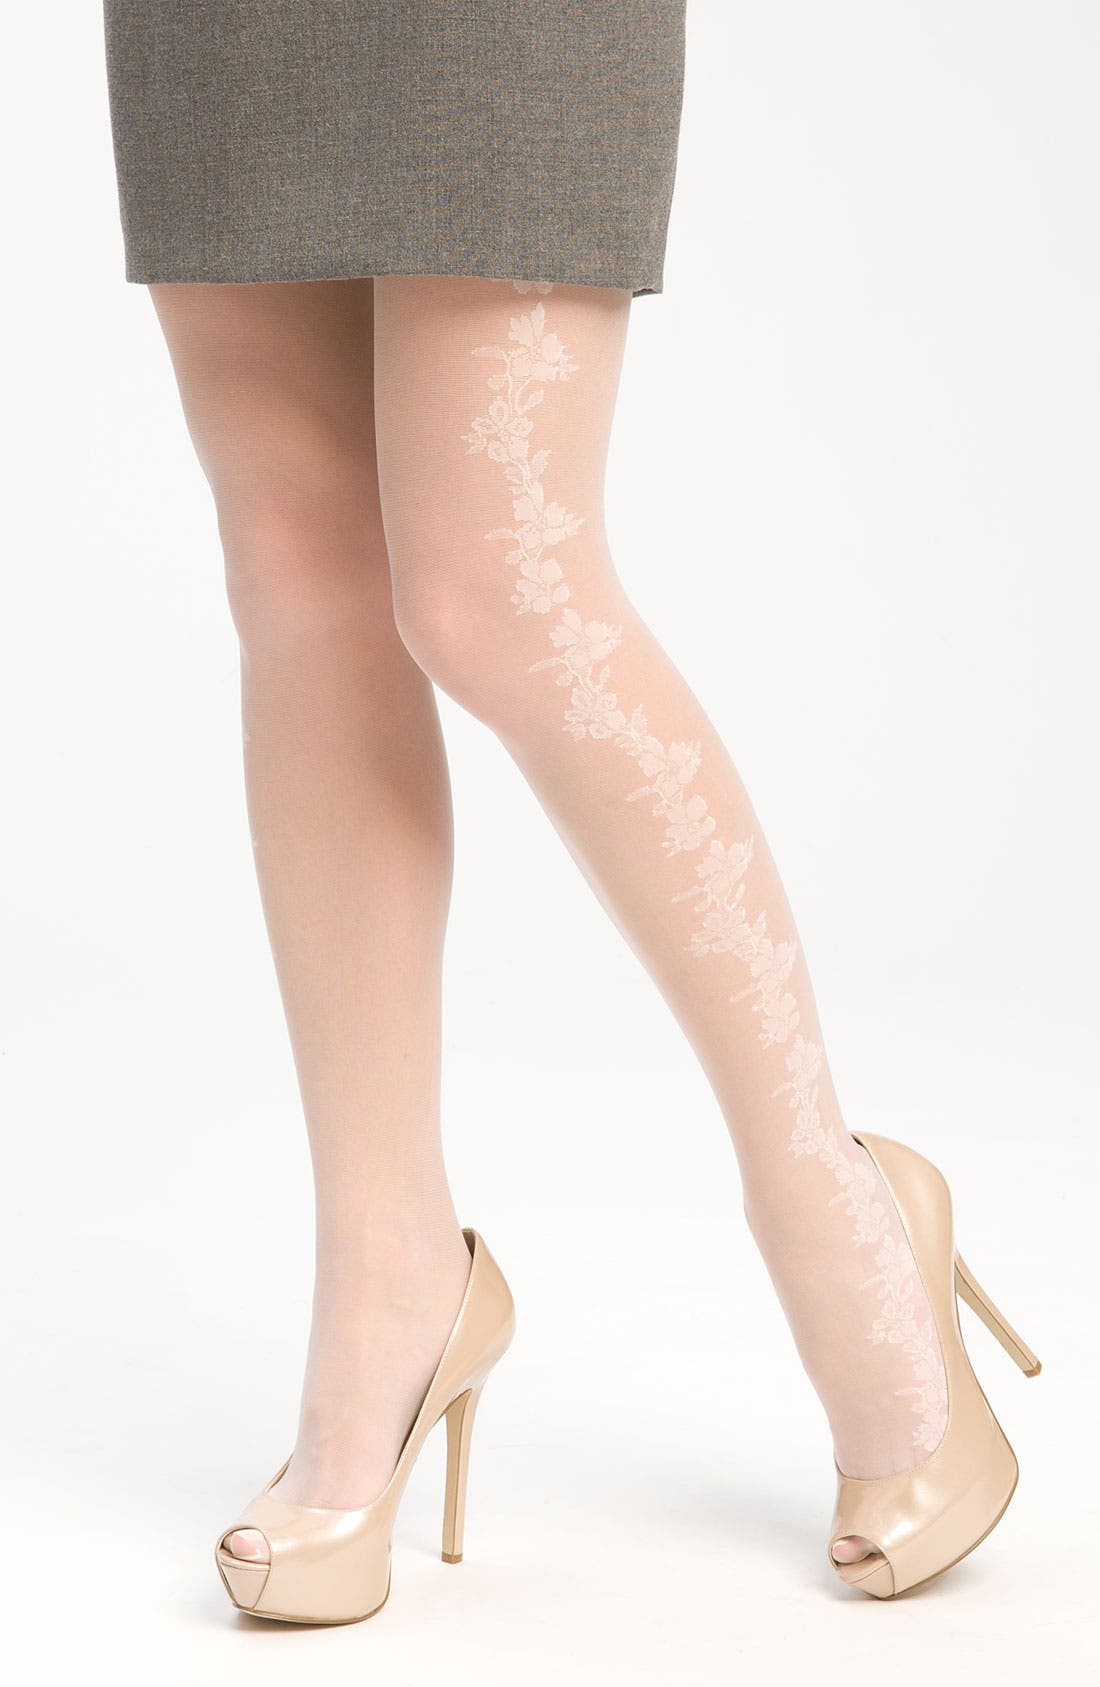 Alternate Image 1 Selected - Nordstrom 'Pretty' Floral Pattern Stockings